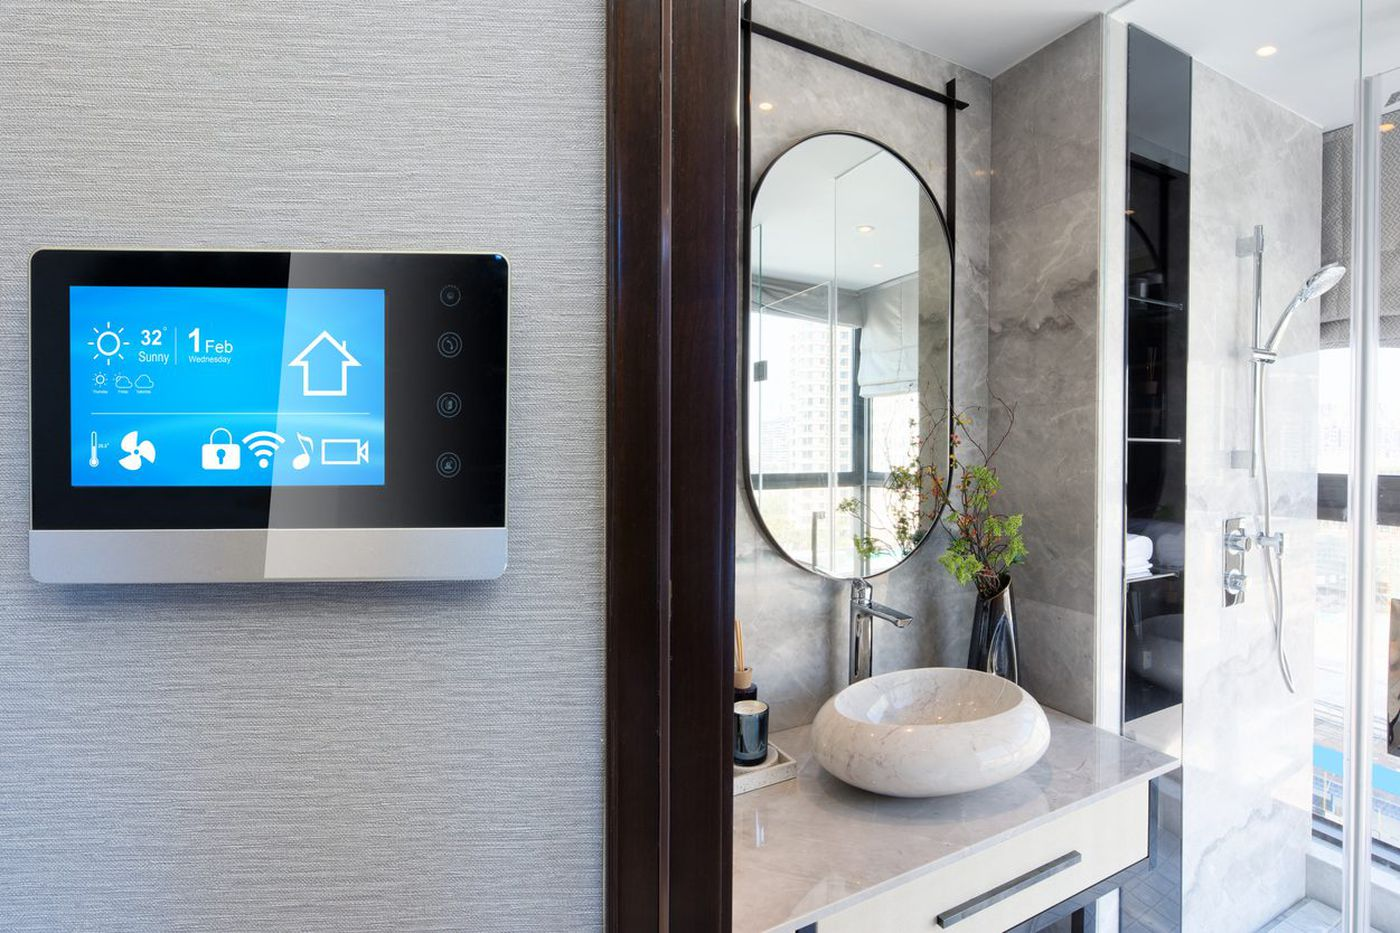 Just how secure are those Internet-enabled home appliances and devices?